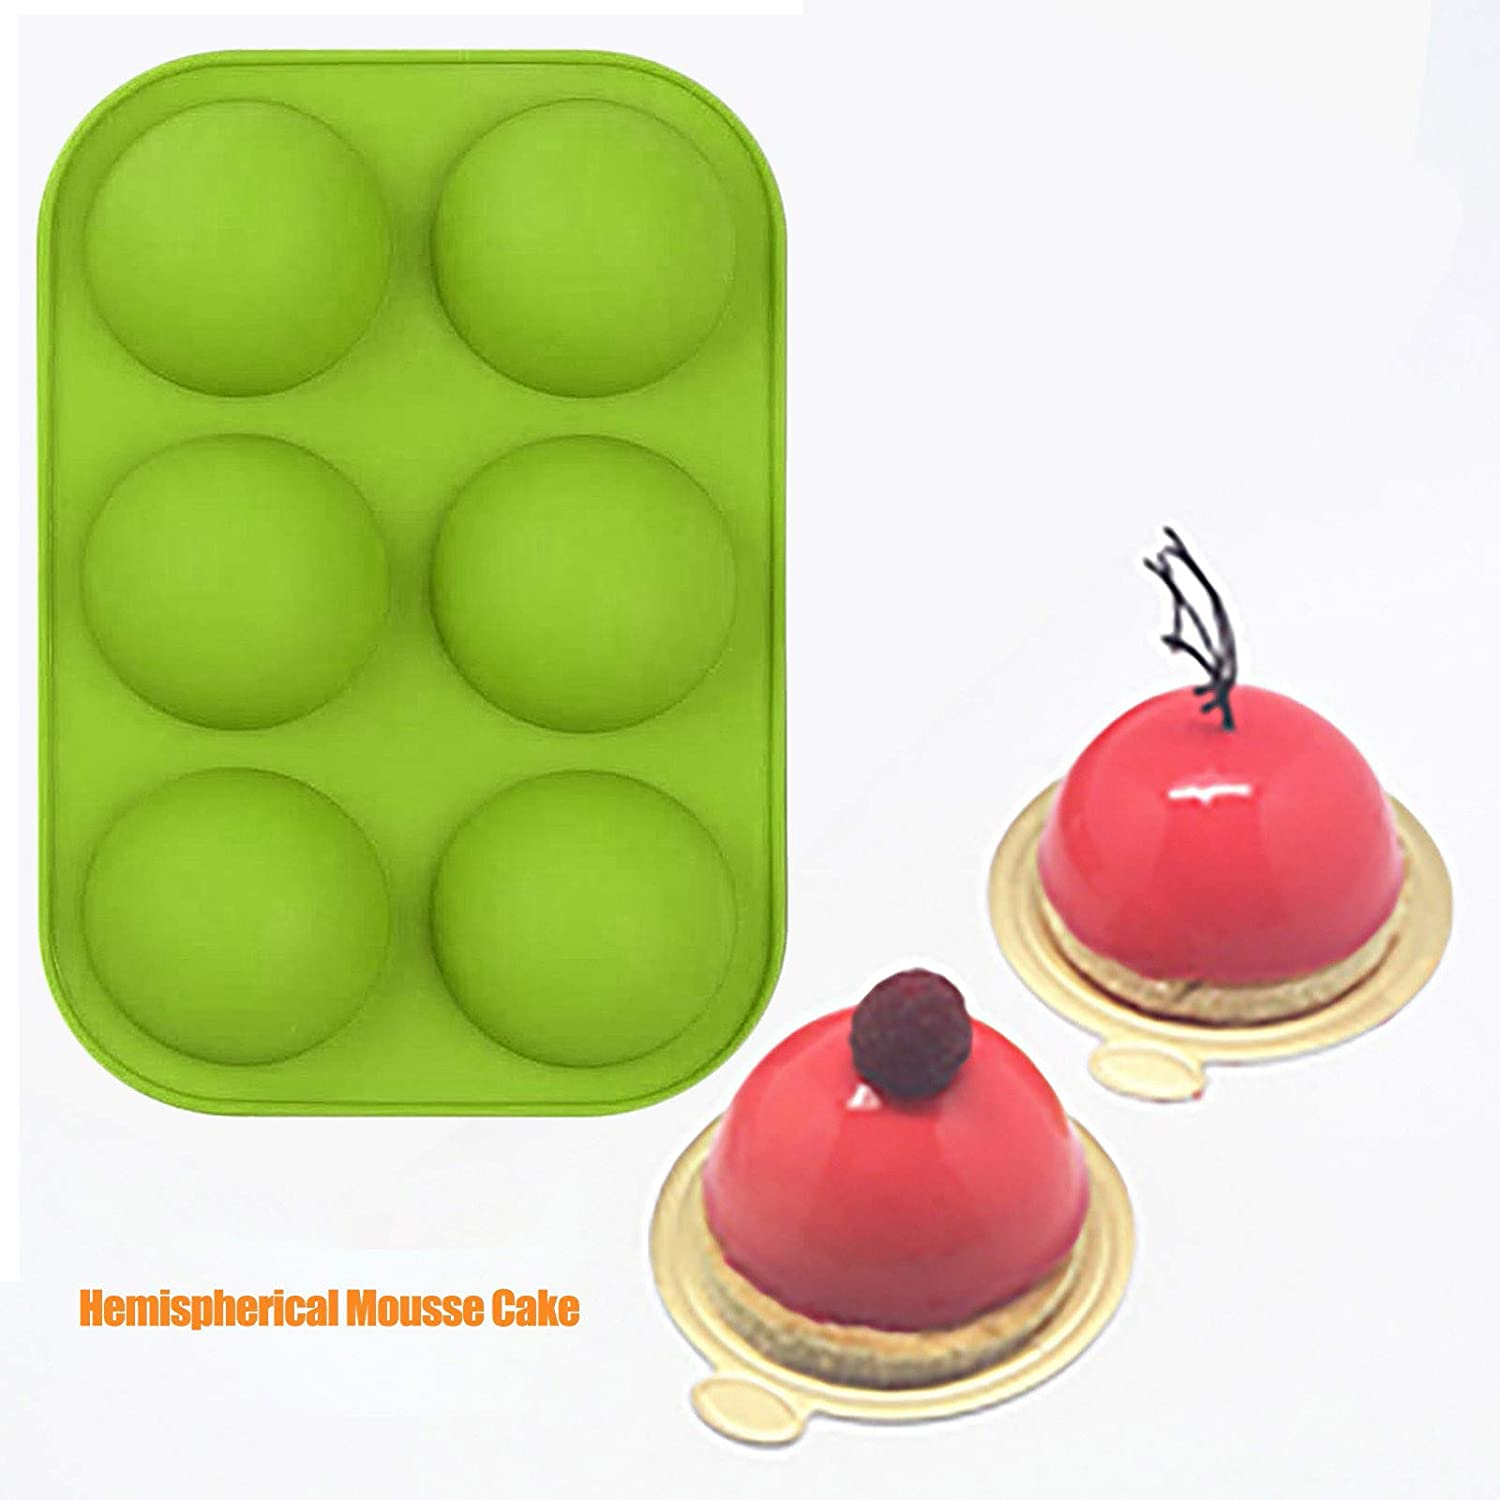 Cake Molds Cake 1 Packs 6 Shapes Medium Semi Sphere Silicone Mold Dome Mousse (Green) Baking Mold for Making Chocolate 1PC Pudding Jelly